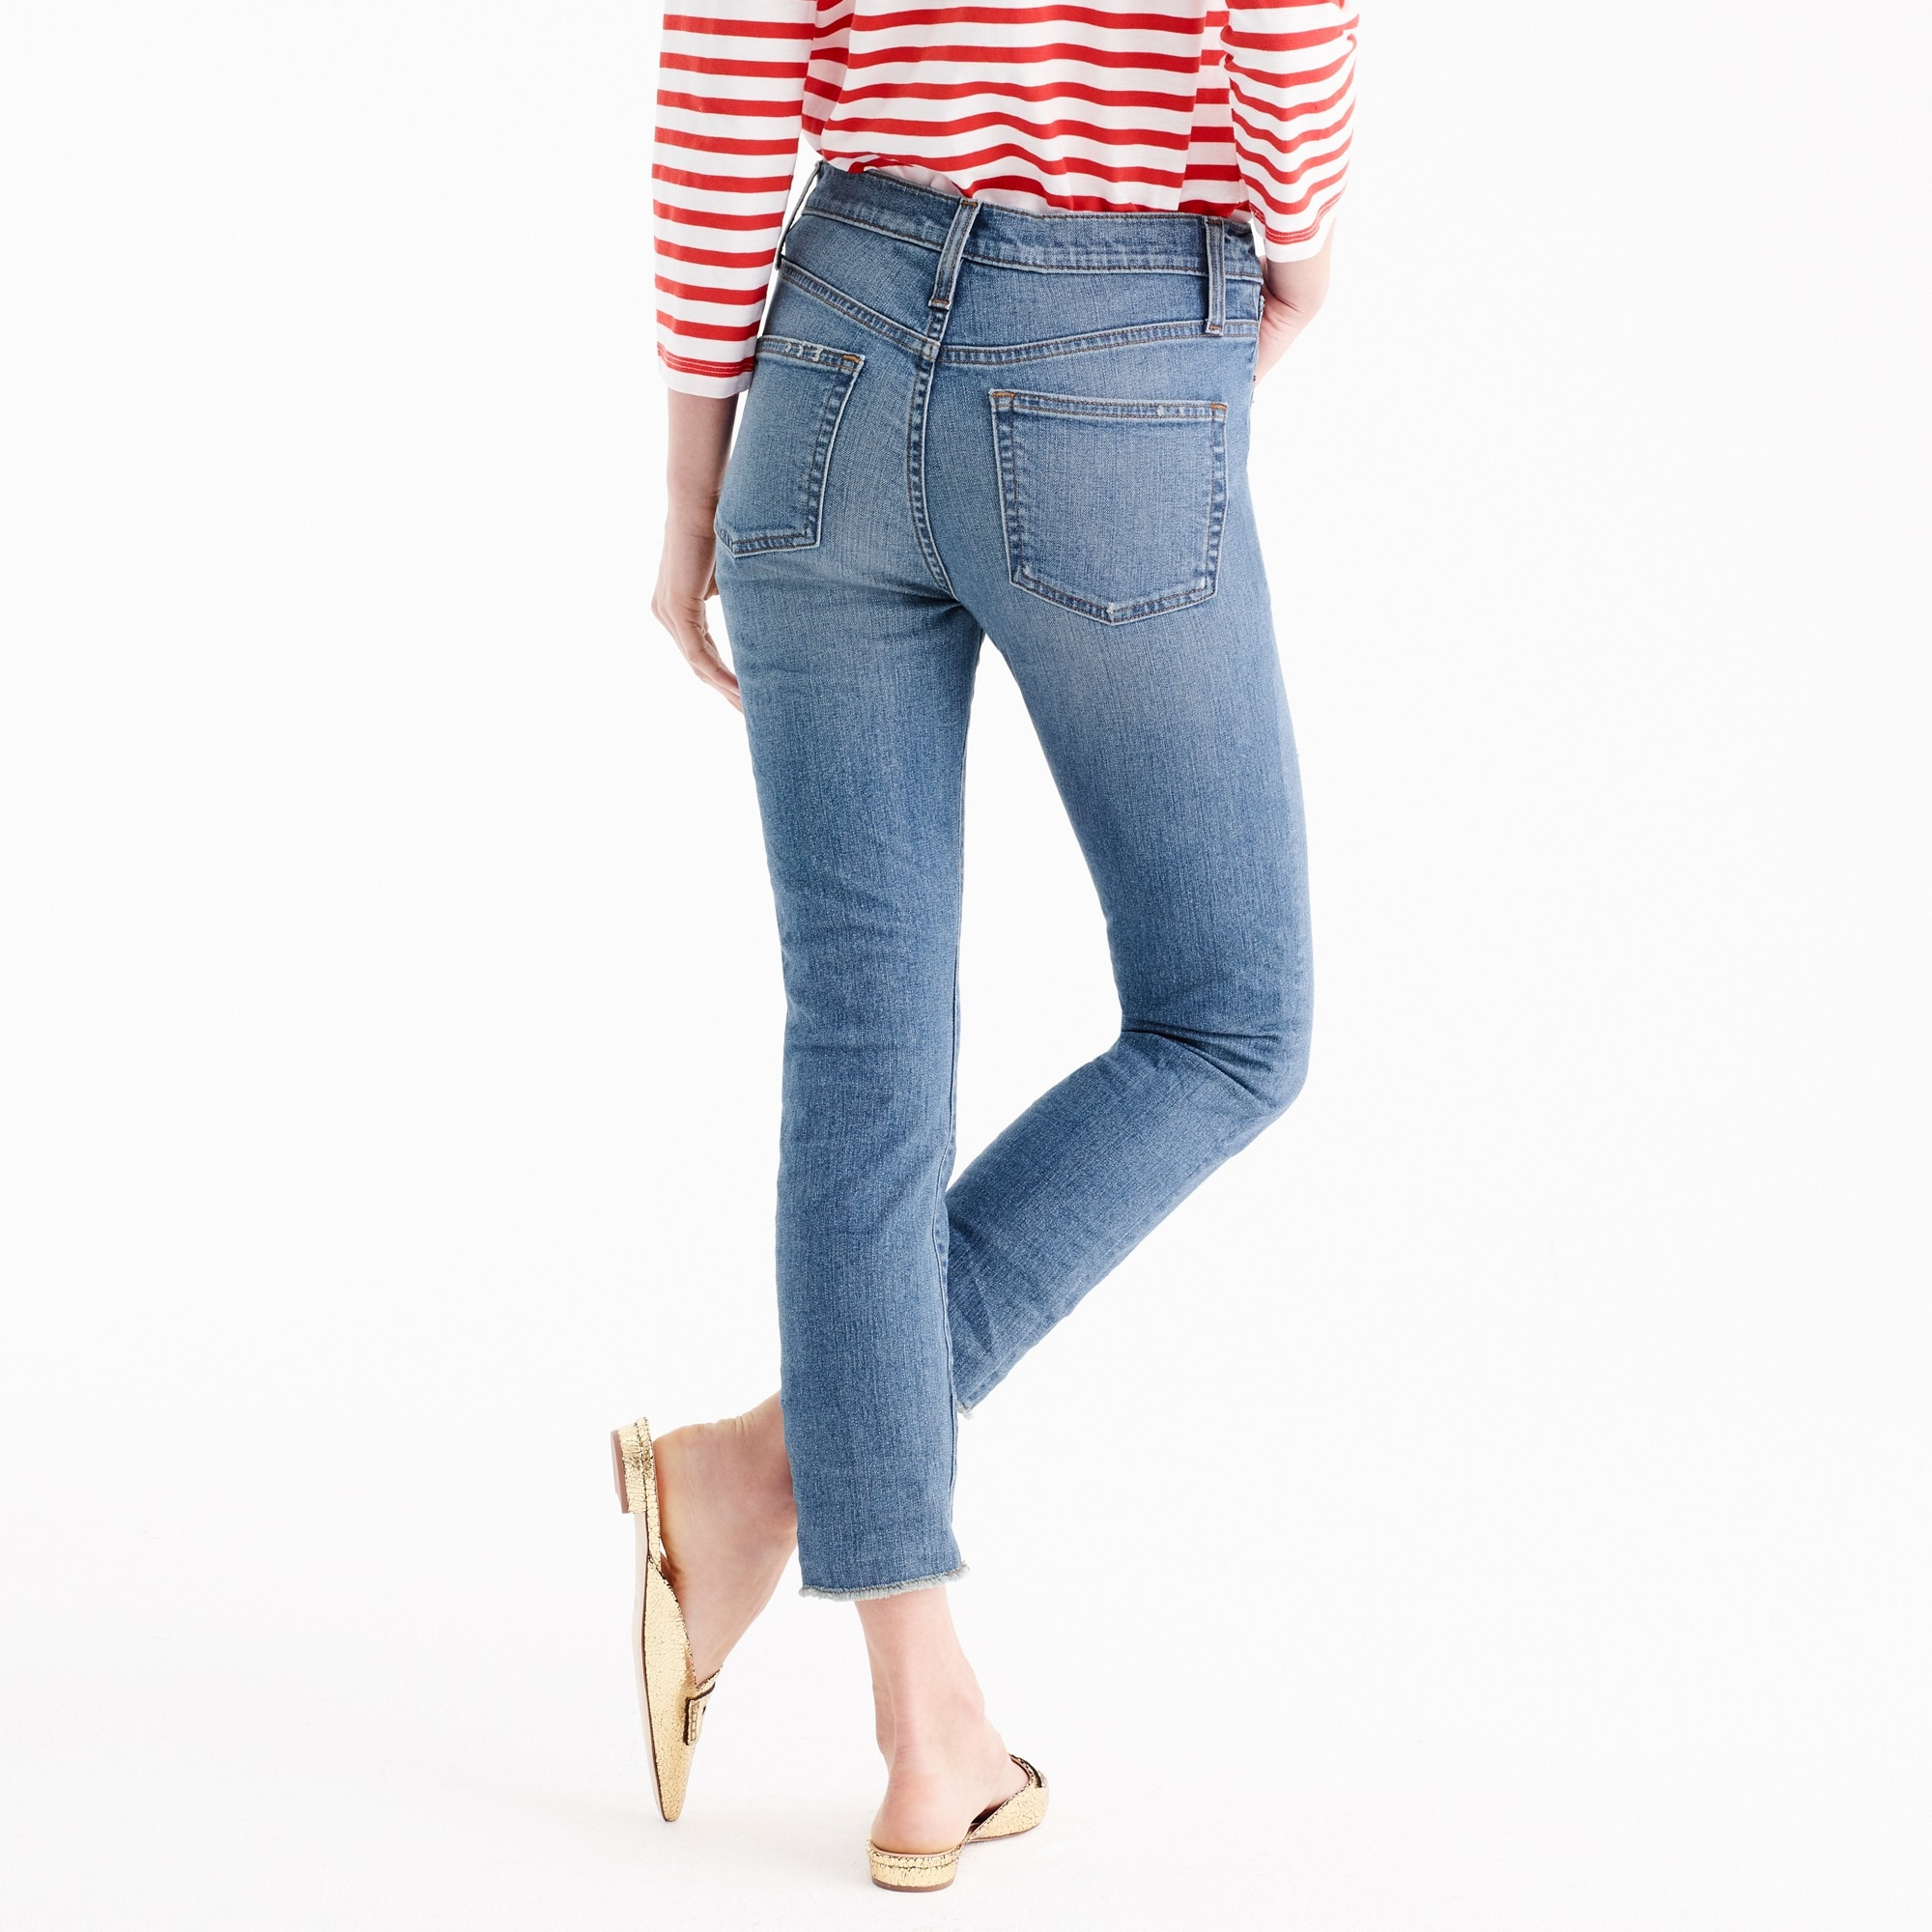 Vintage crop jean in Landers wash